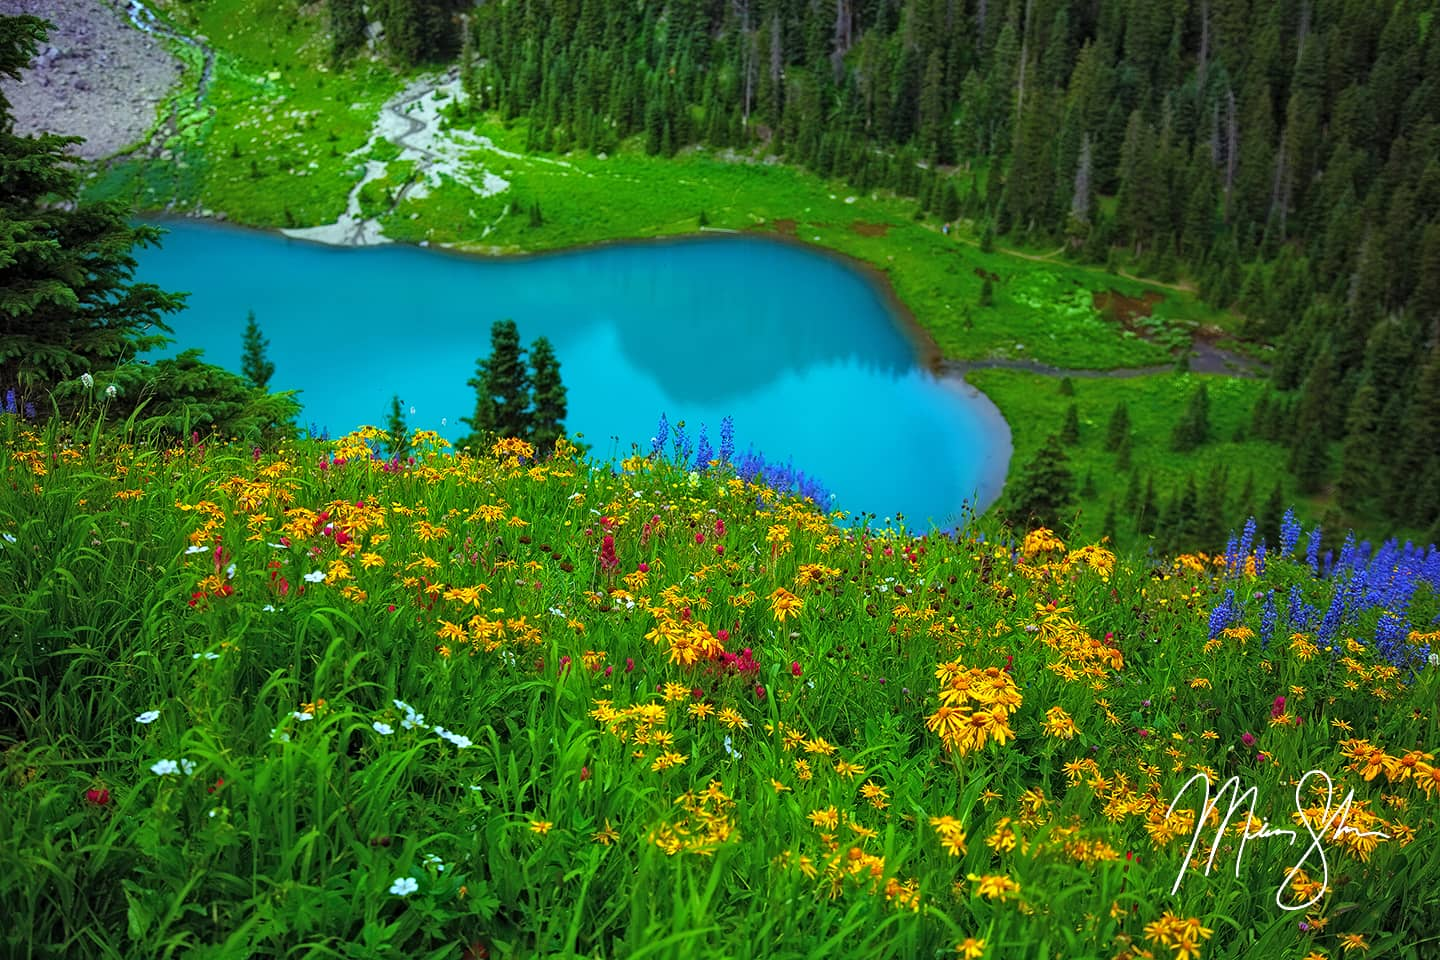 Colorado Wildflowers - Blue Lake, San Juans, Colorado